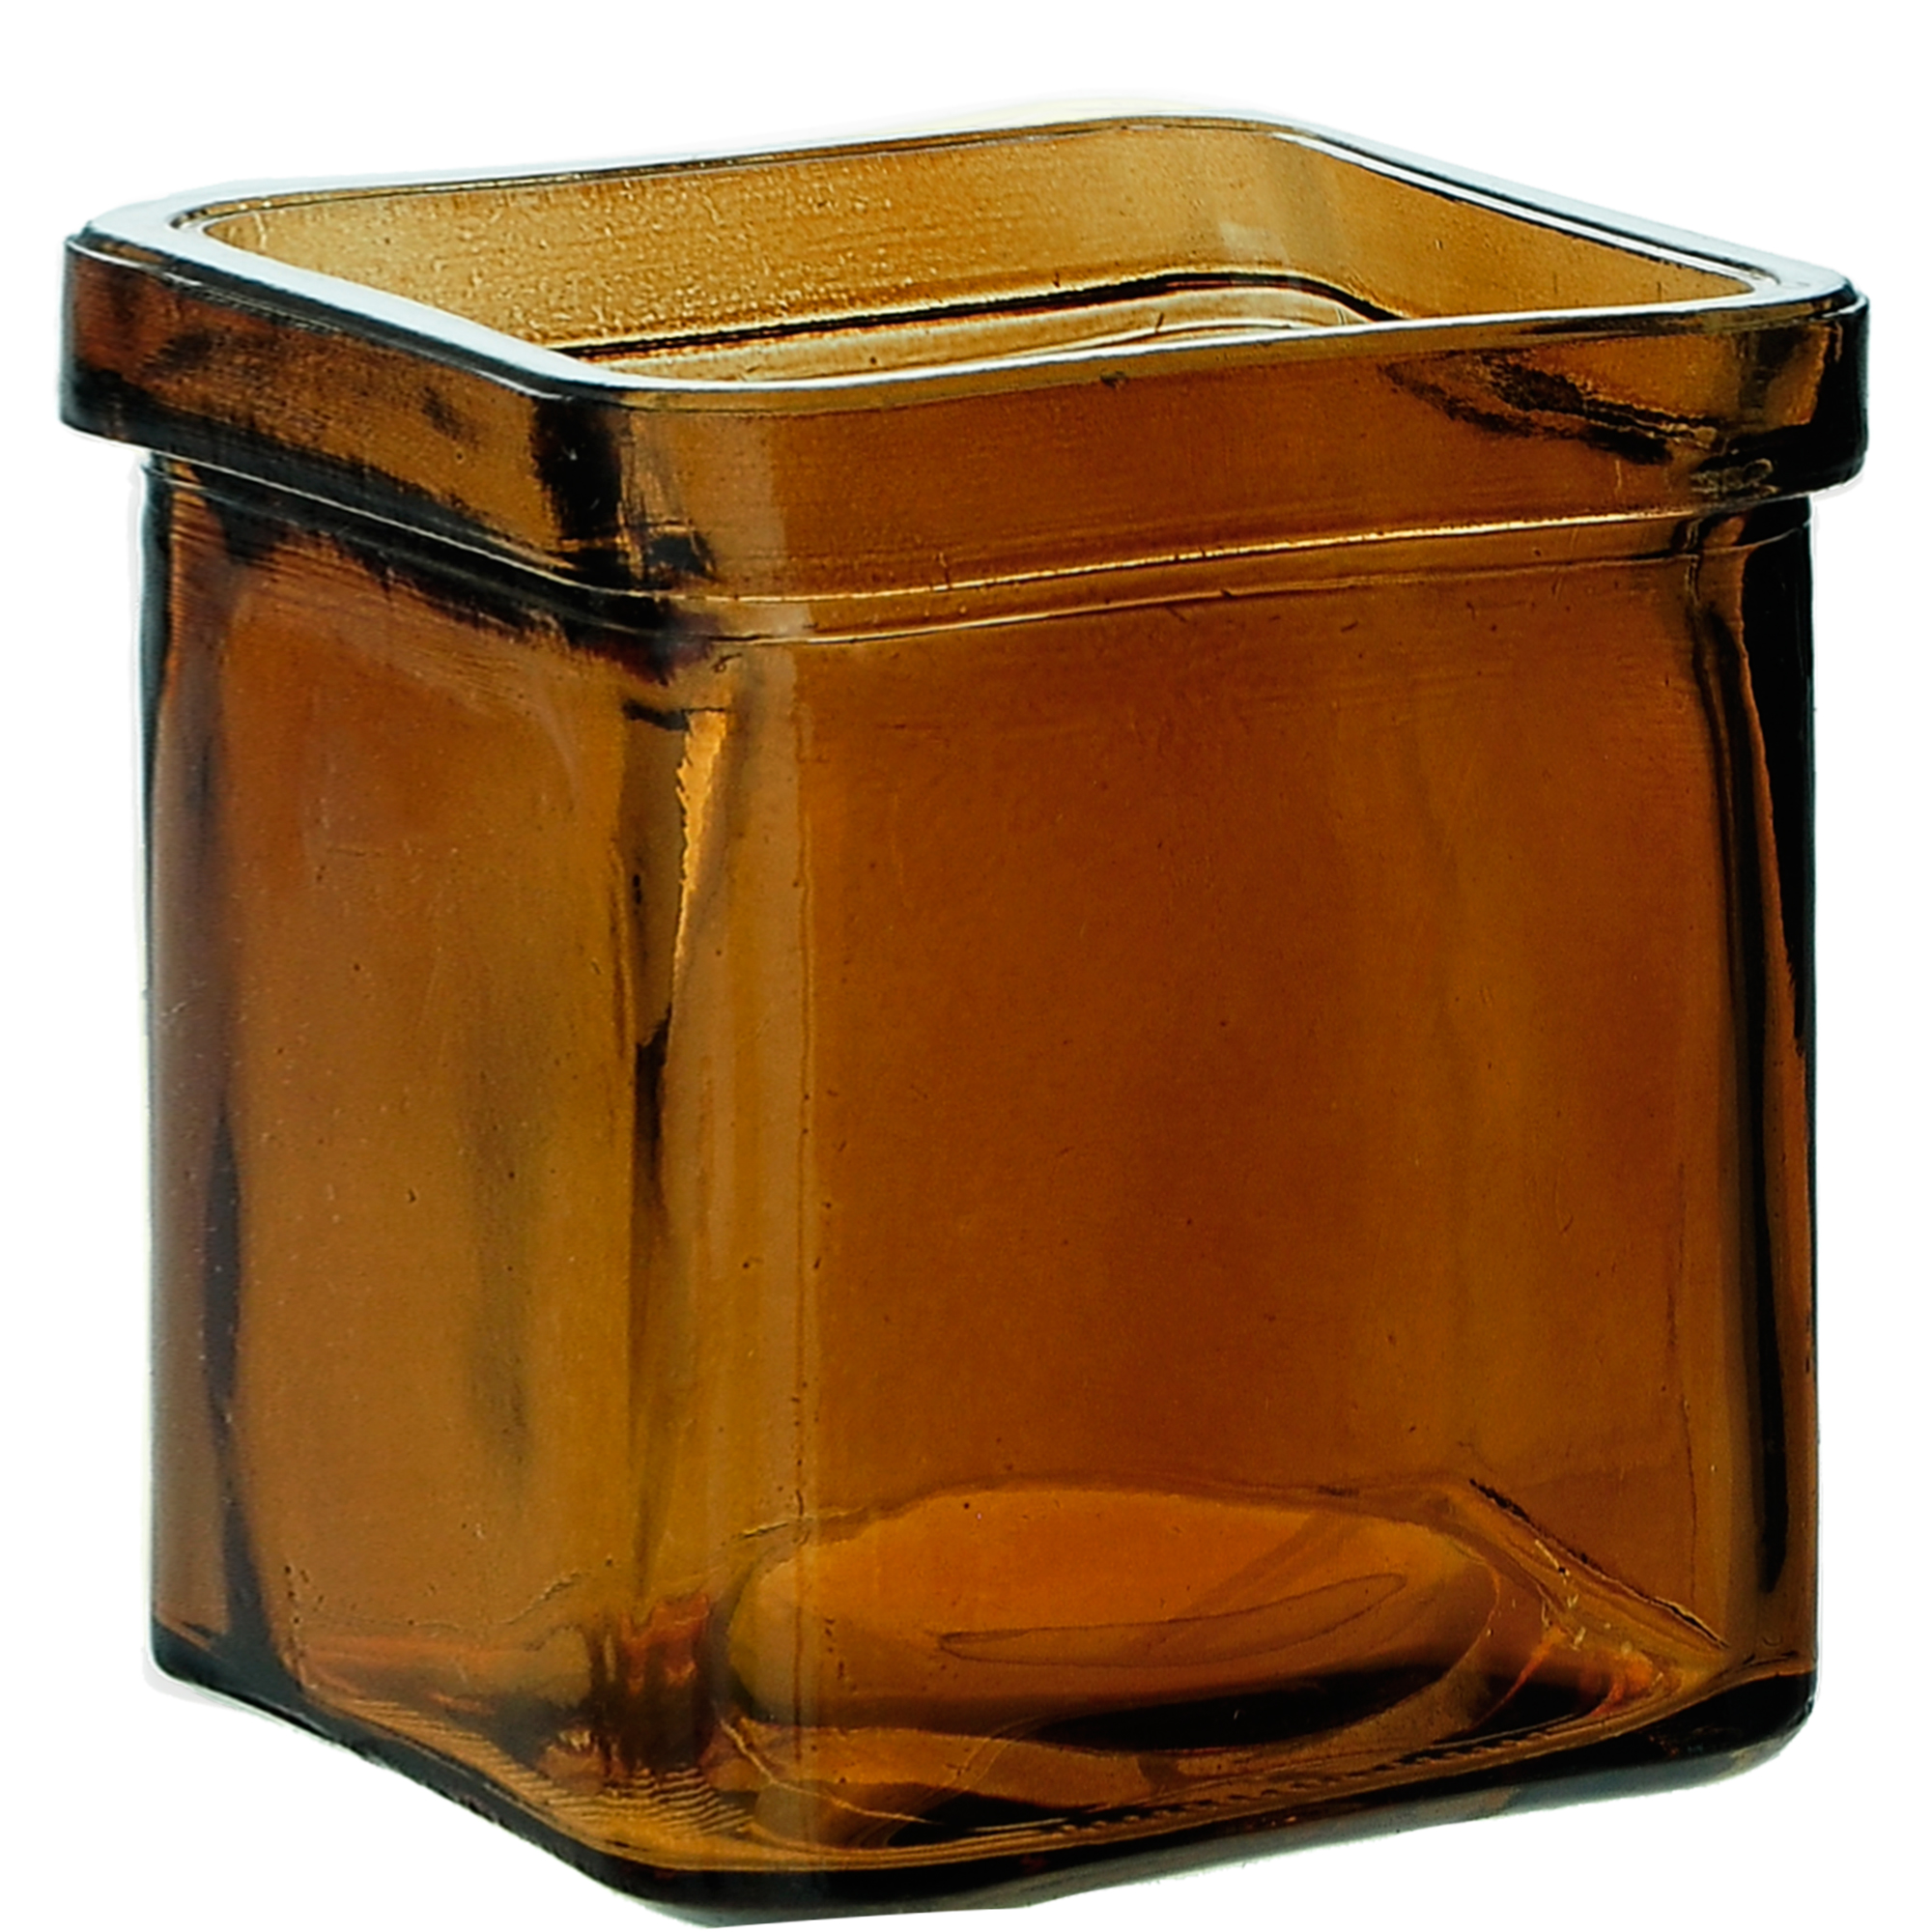 Couronne Co Square Recycled Glass Candle Container, 7527, 3.25 inches tall, 8.5 Ounce Capacity